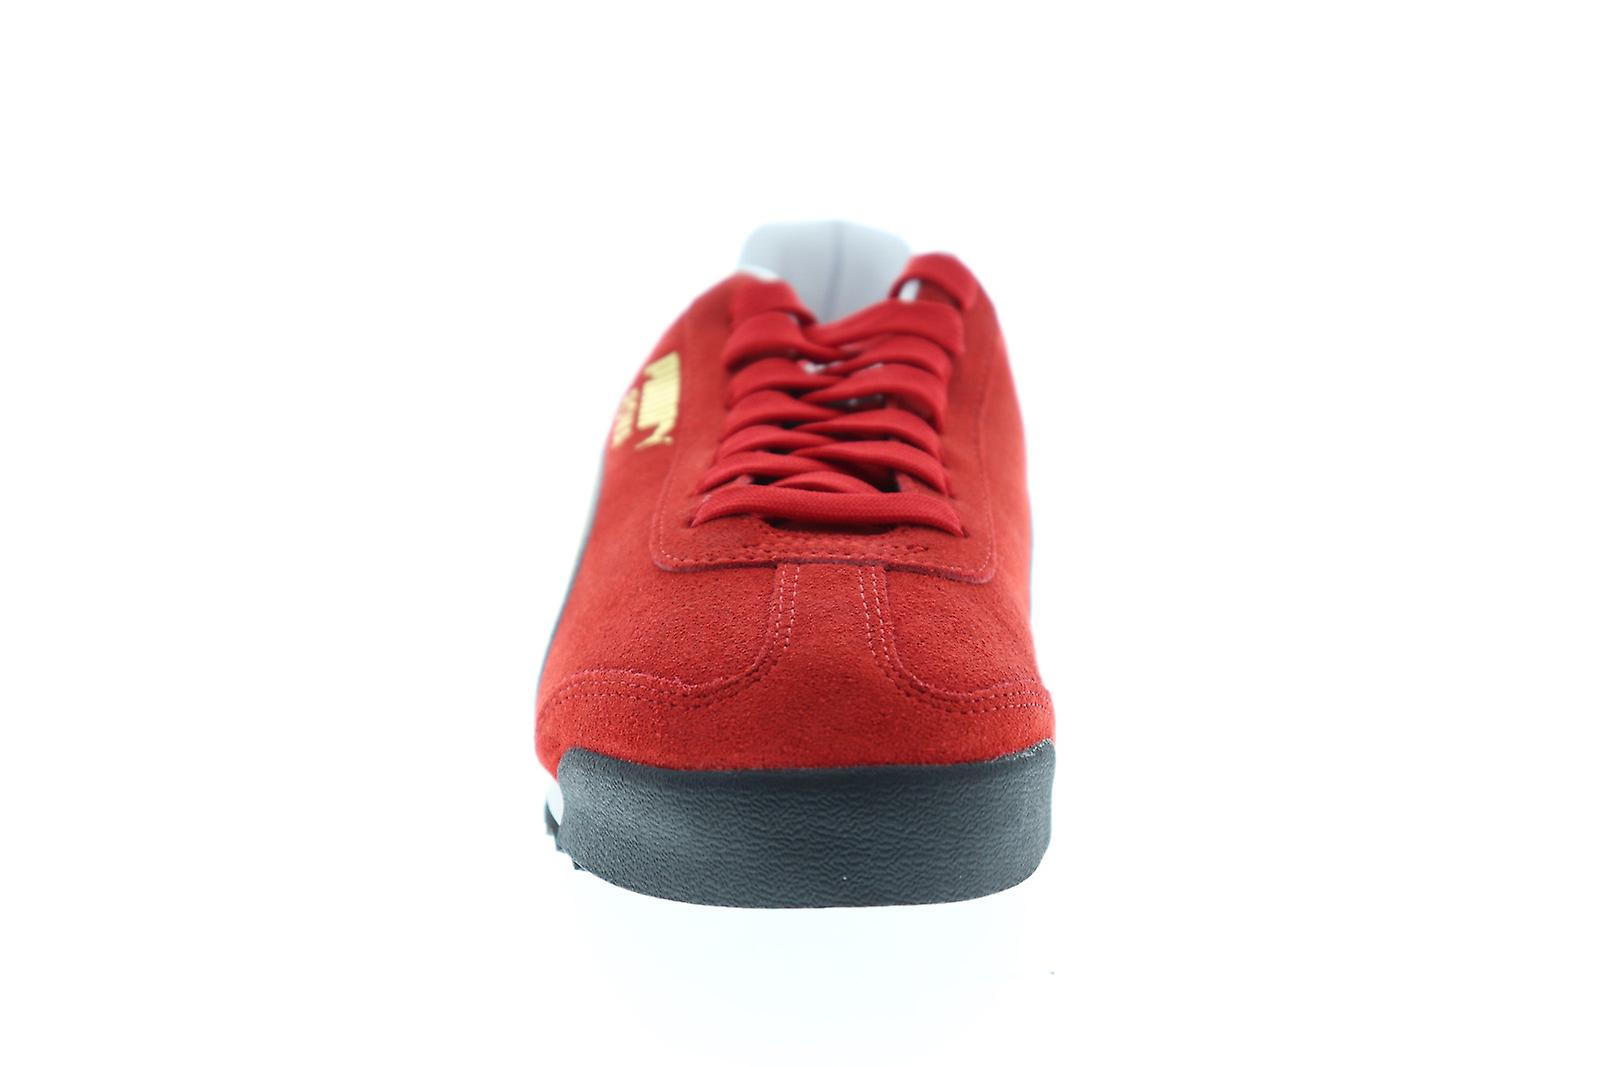 low priced 703b5 9956b Puma Roma Suede Mens Red Suede Low Top Lace Up Sneakers Shoes